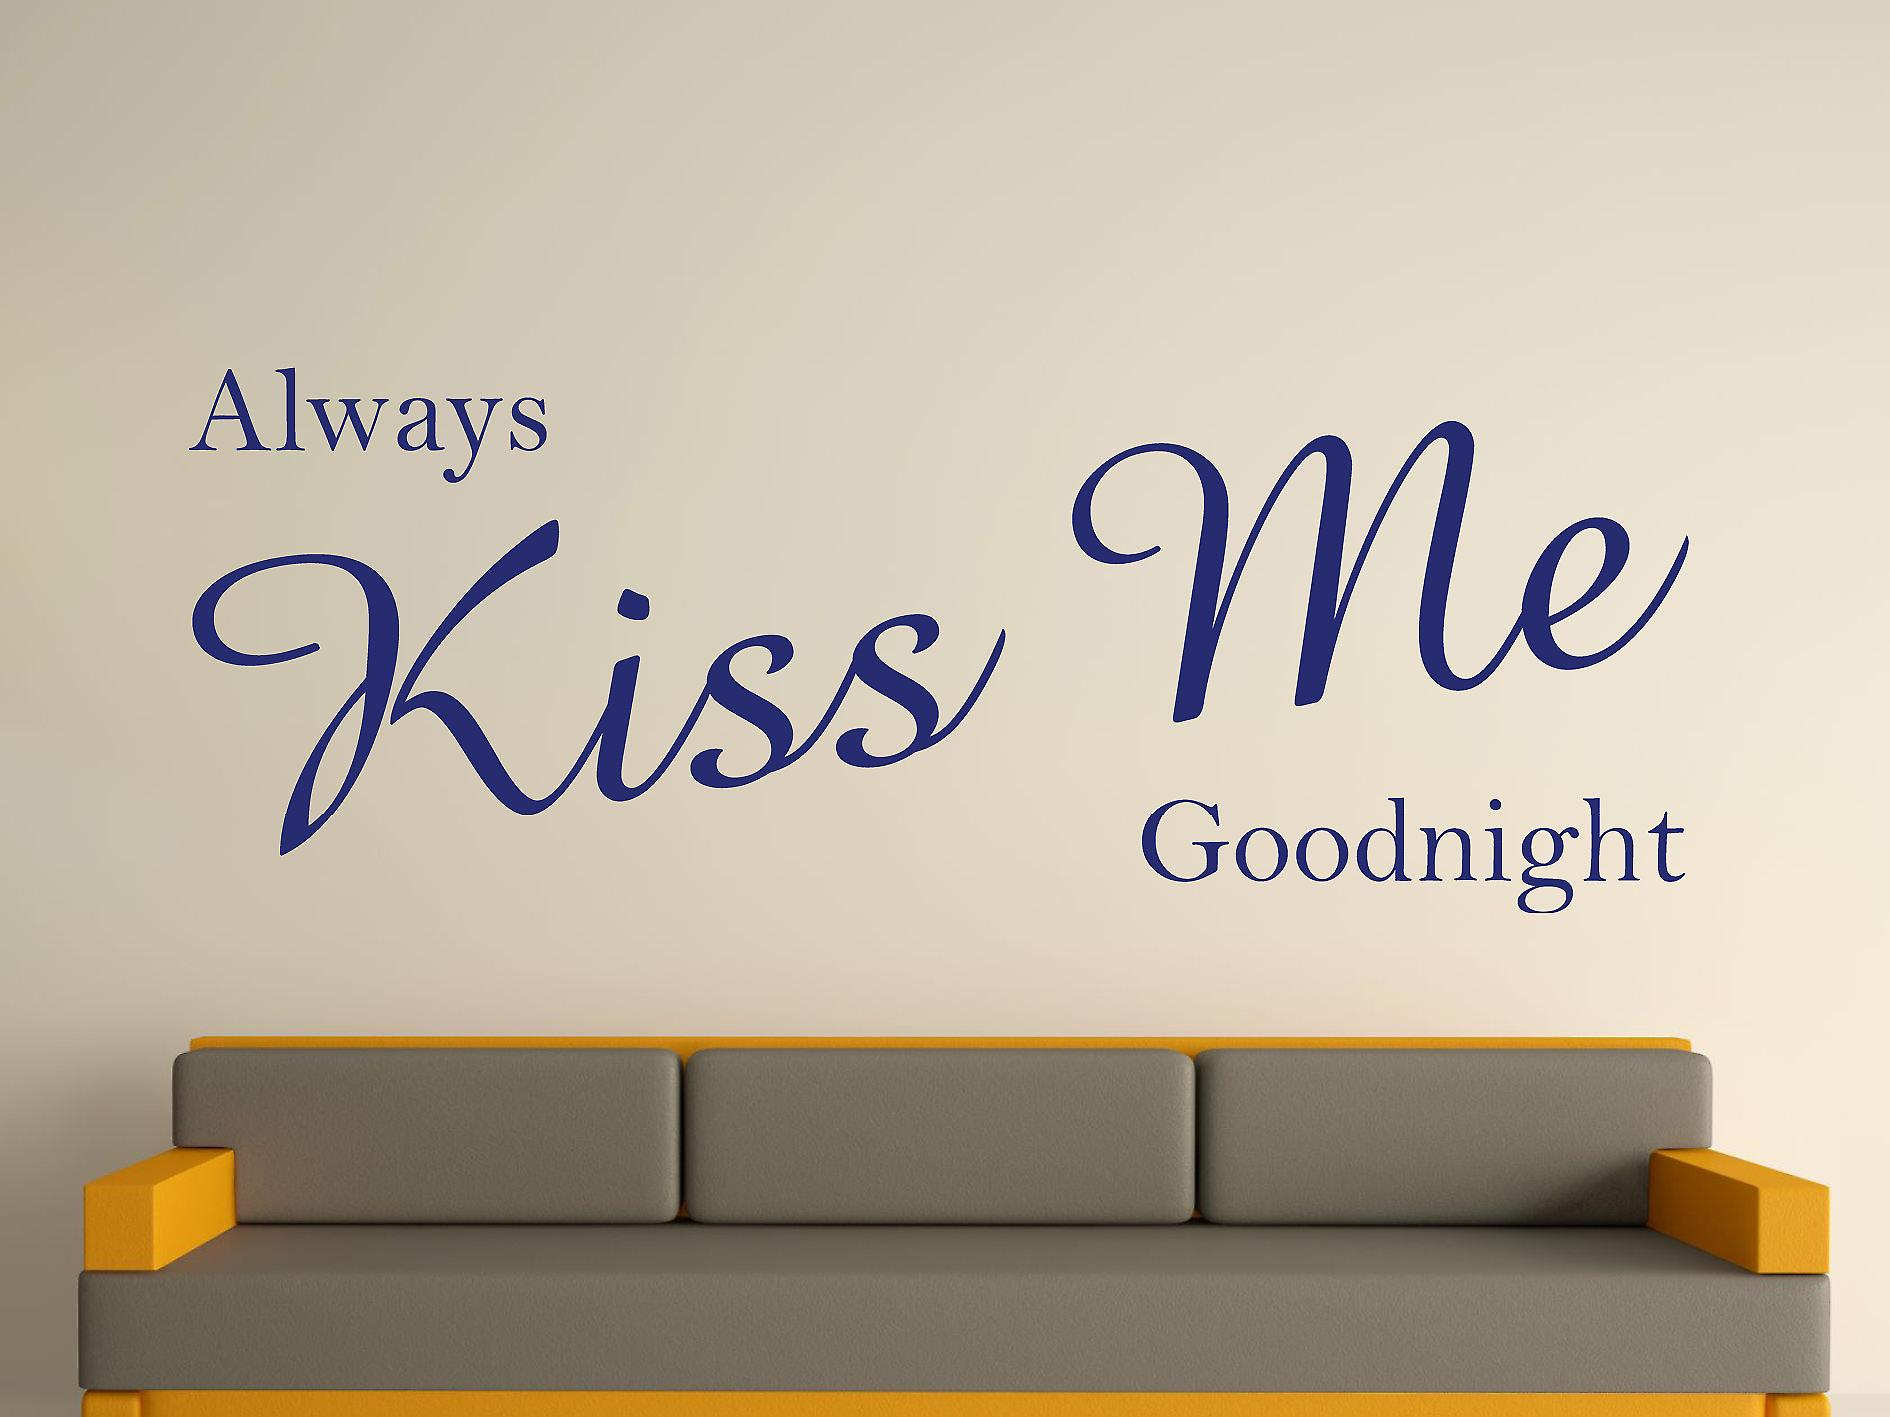 Always Kiss Me Goodnight Wall Art Sticker - Ultra Blue